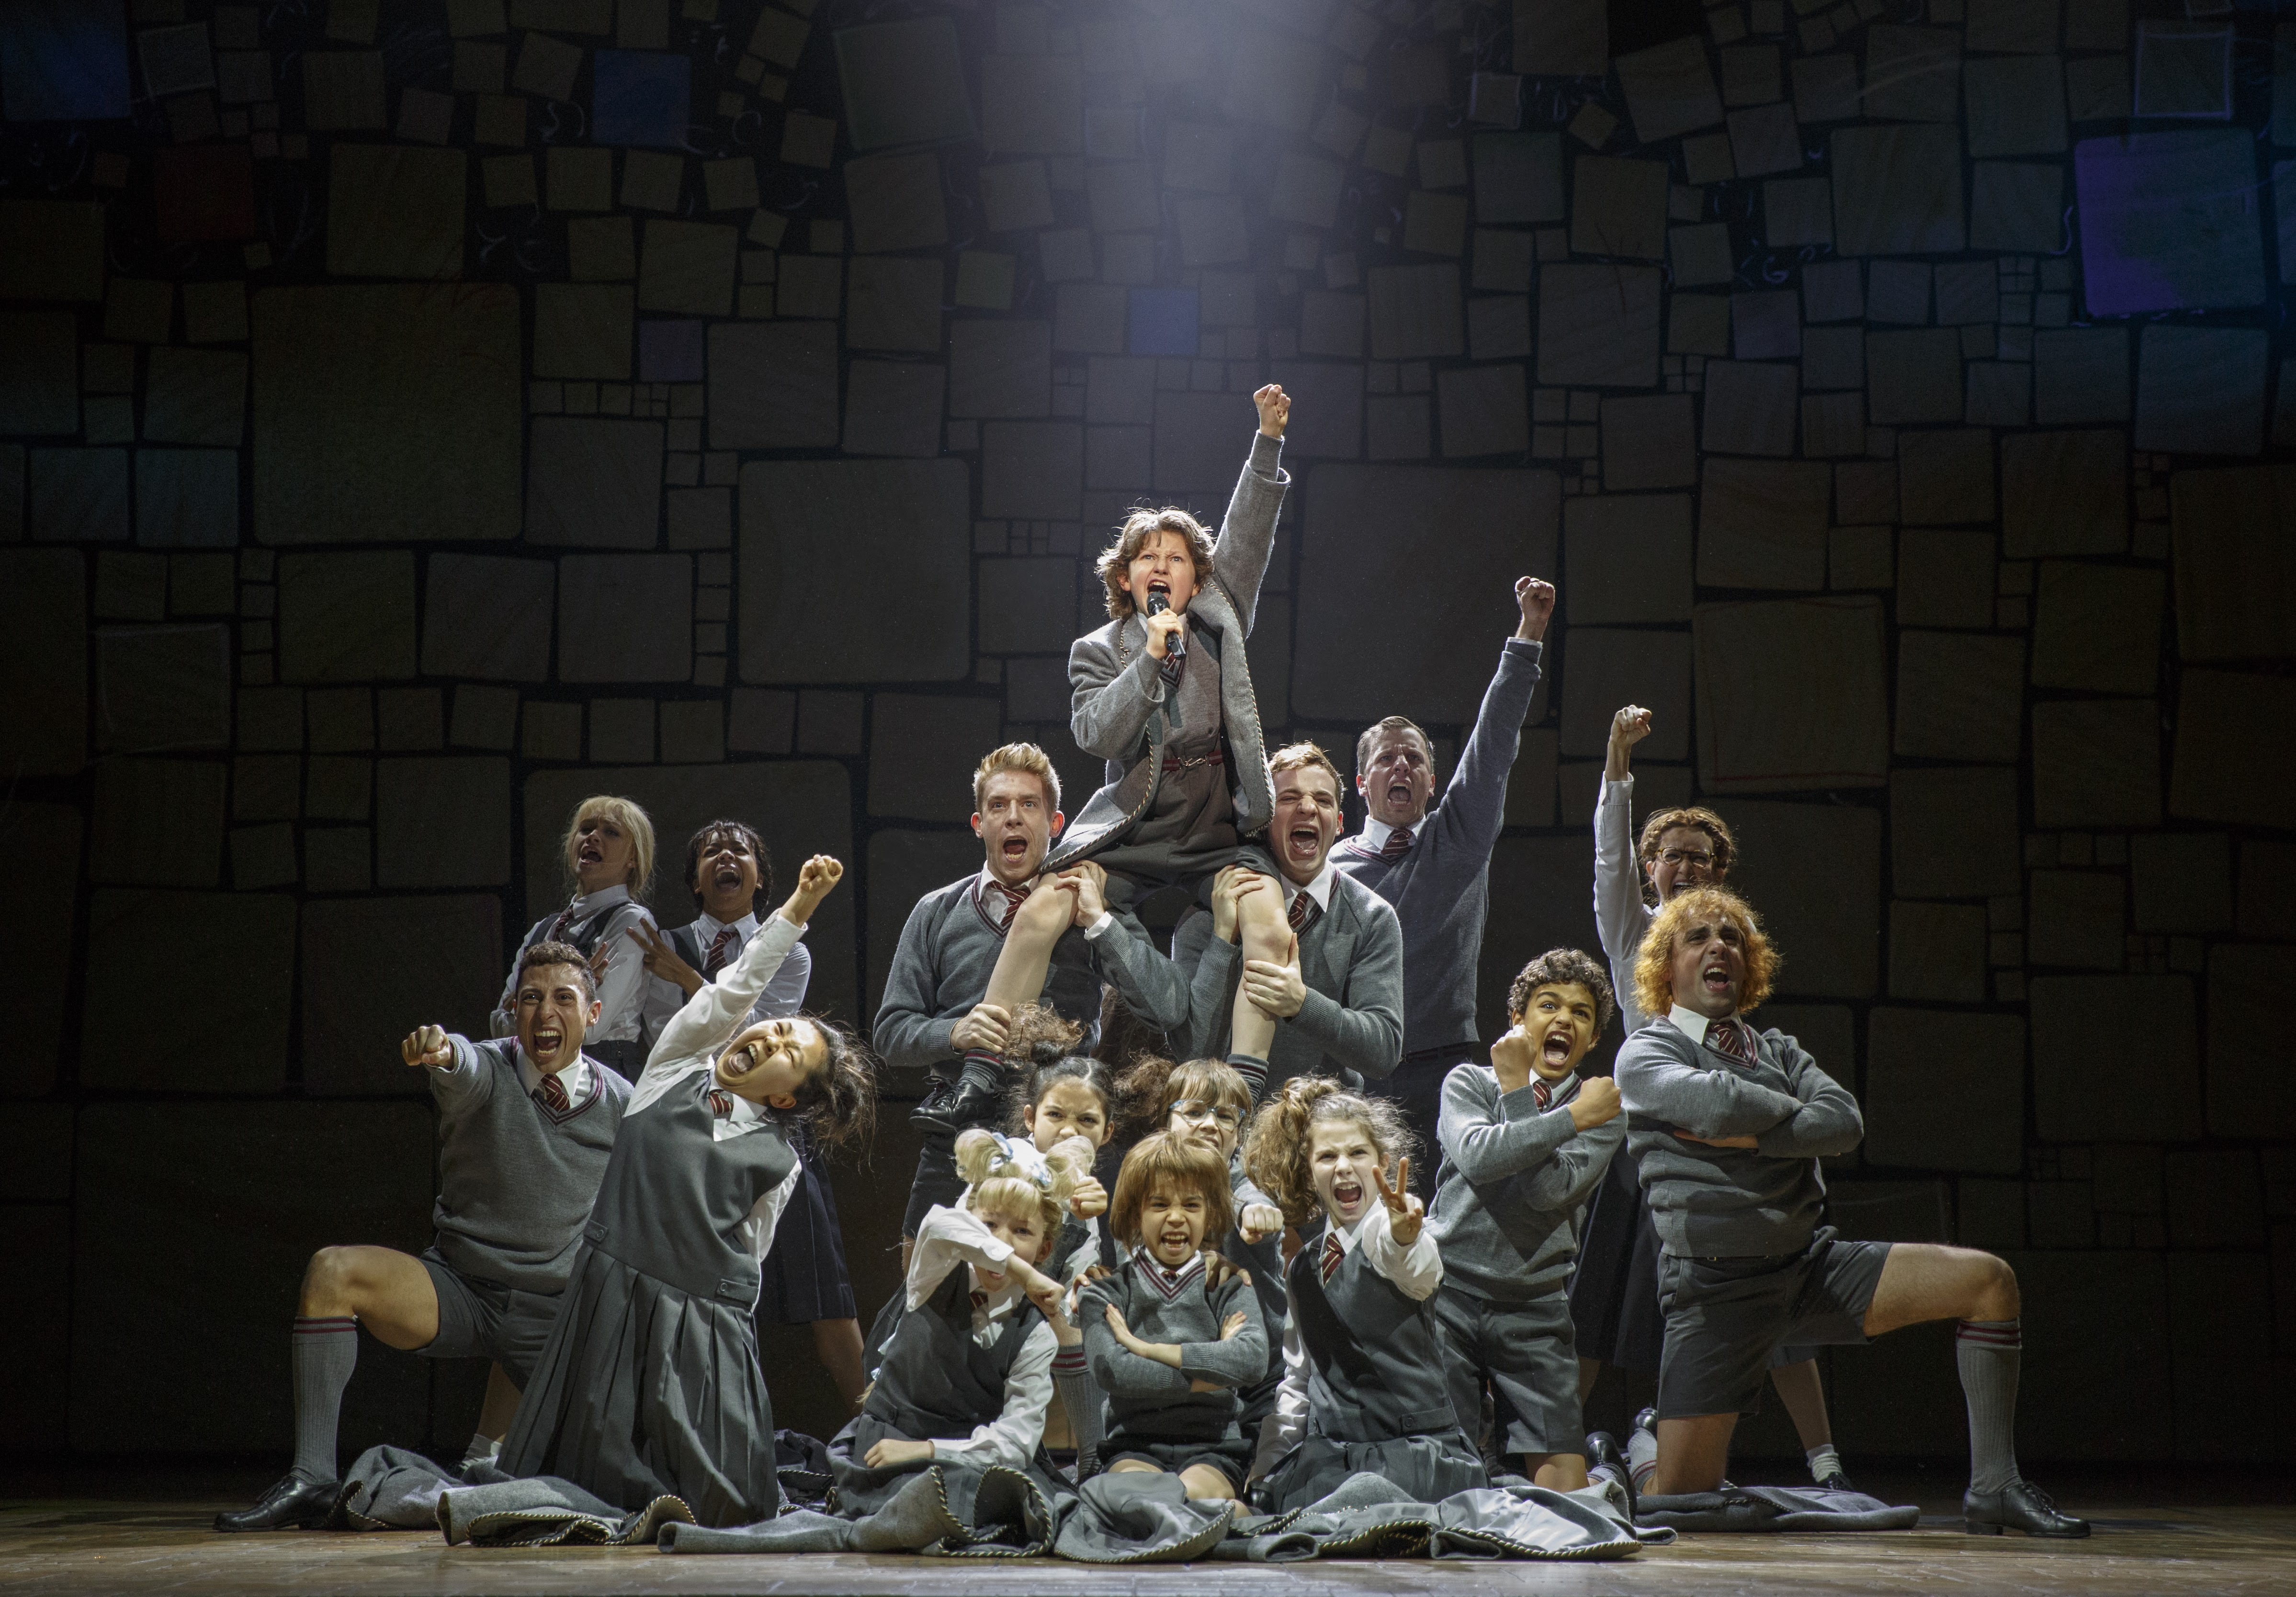 The children's cast of Matilda The Musical was amazing!